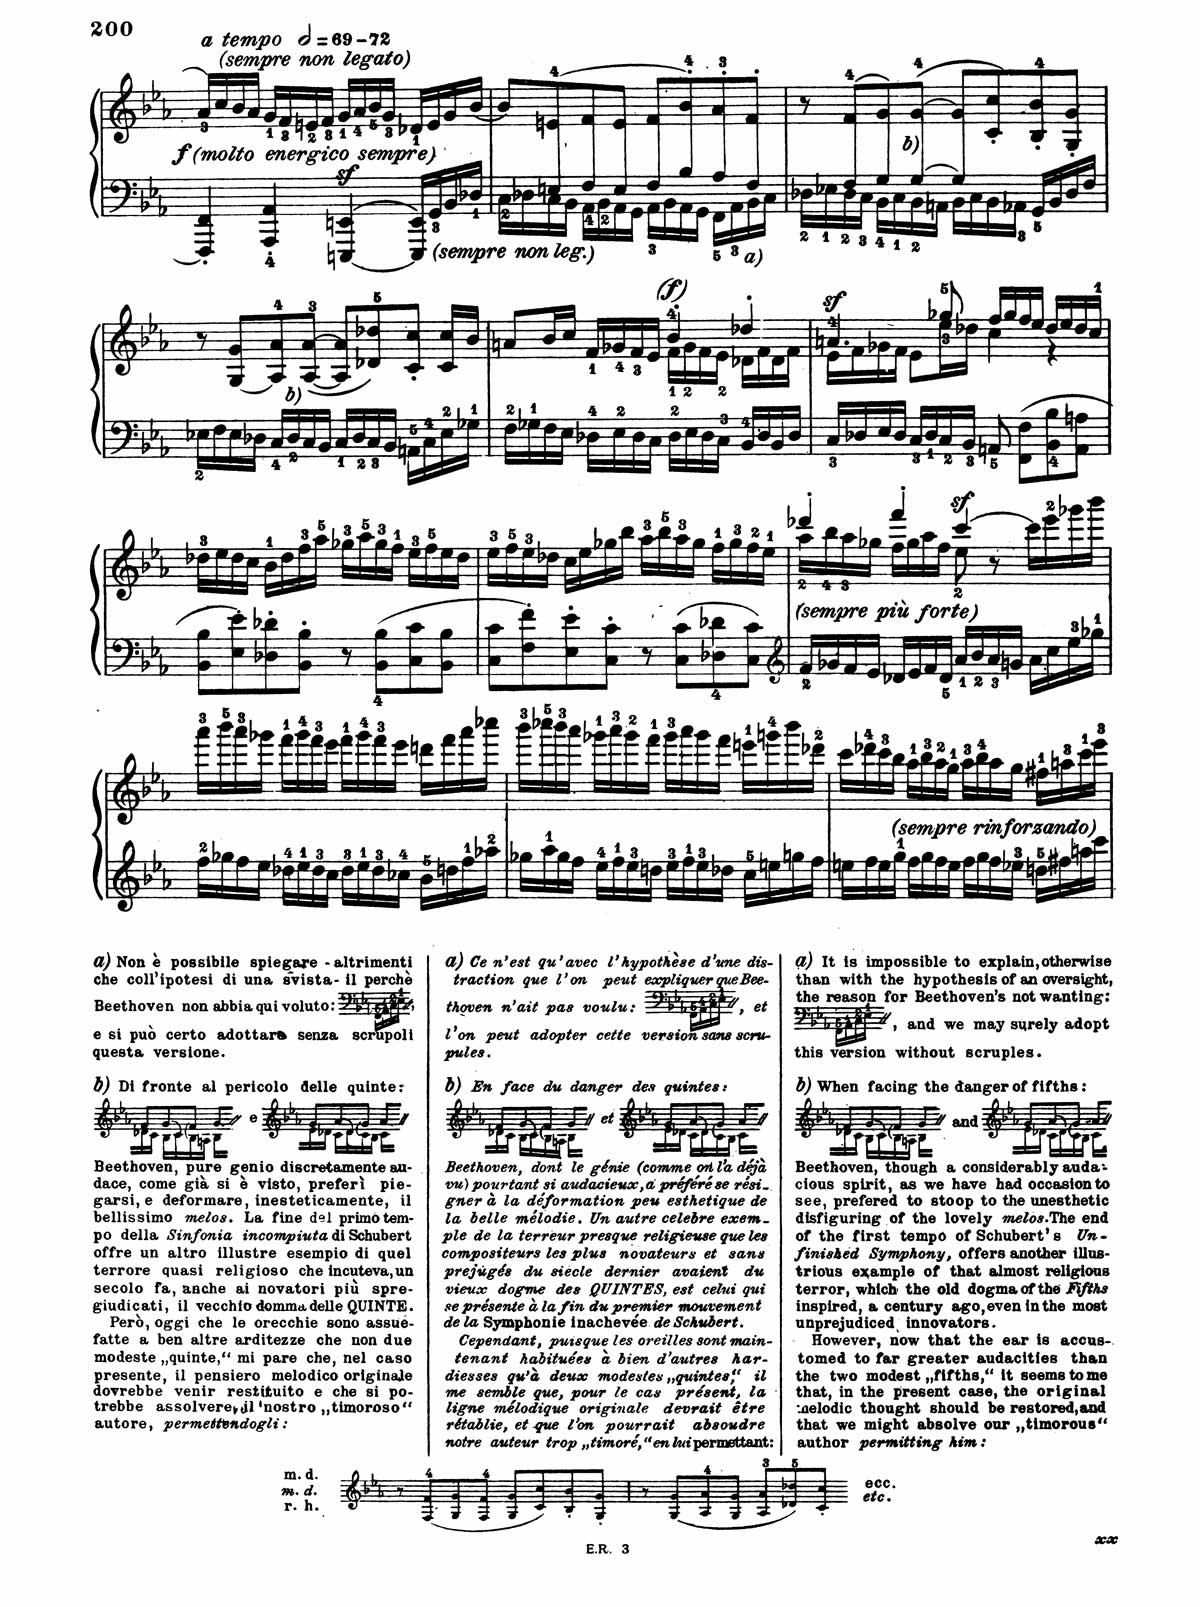 Beethoven Piano Sonata 32-8 sheet music